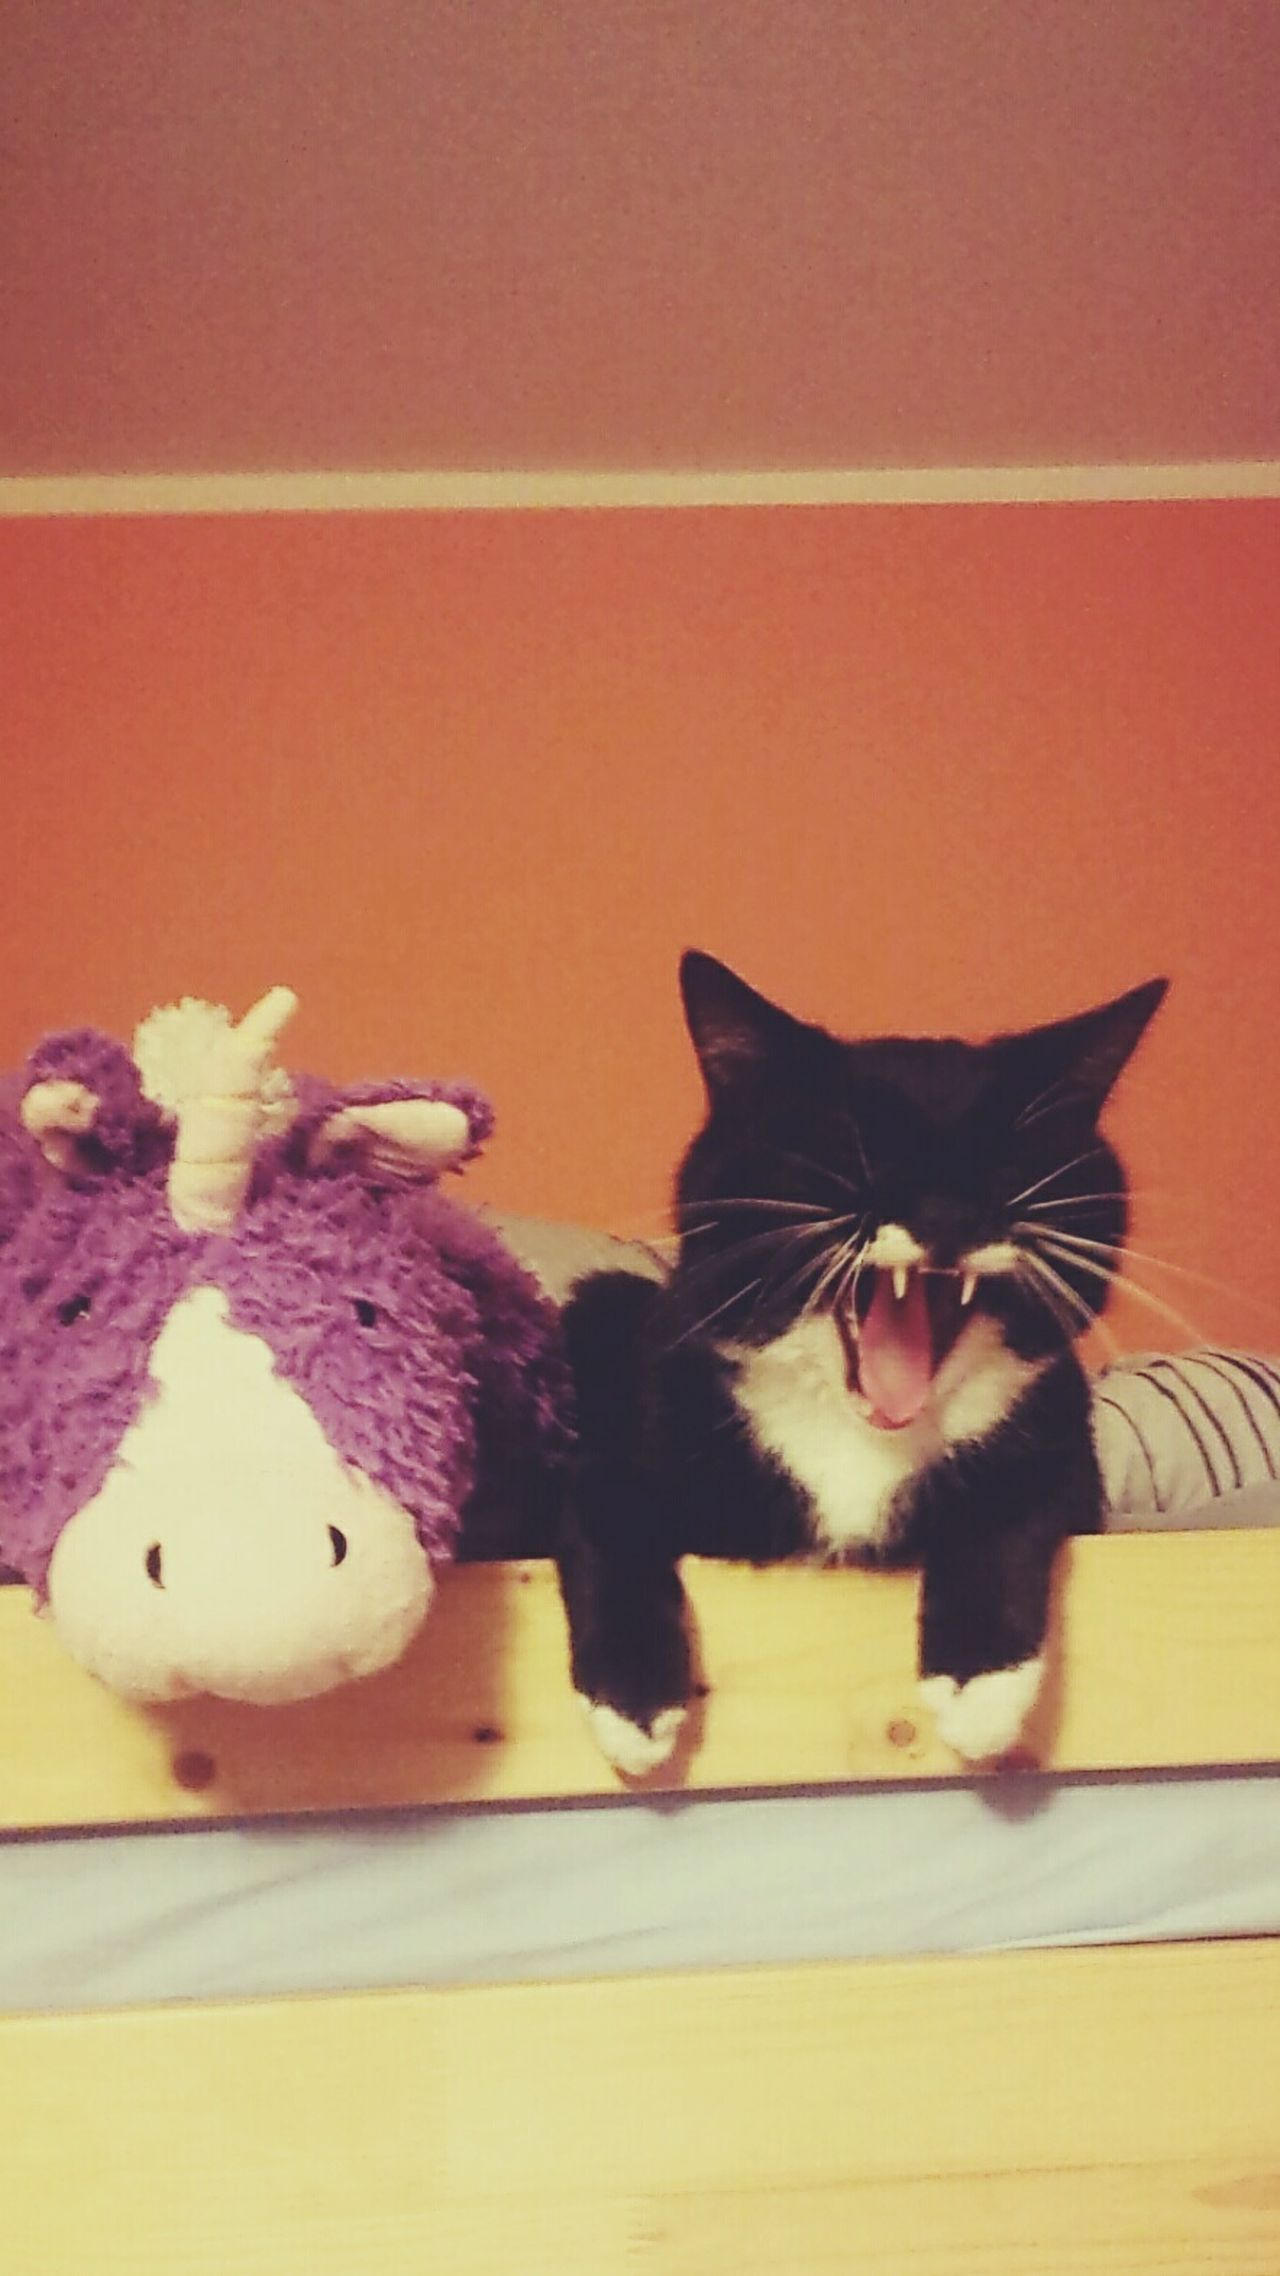 Ryszard's emotional Whenmomsaysno Cat Unicorn Pollowpet Yawning Emotional Justcanteven Nomore Cute Fangs Bestfriends Partnersincrime Cat Life Cry Out Roar Whiskers The Portraitist - The 2016 EyeEm Awards